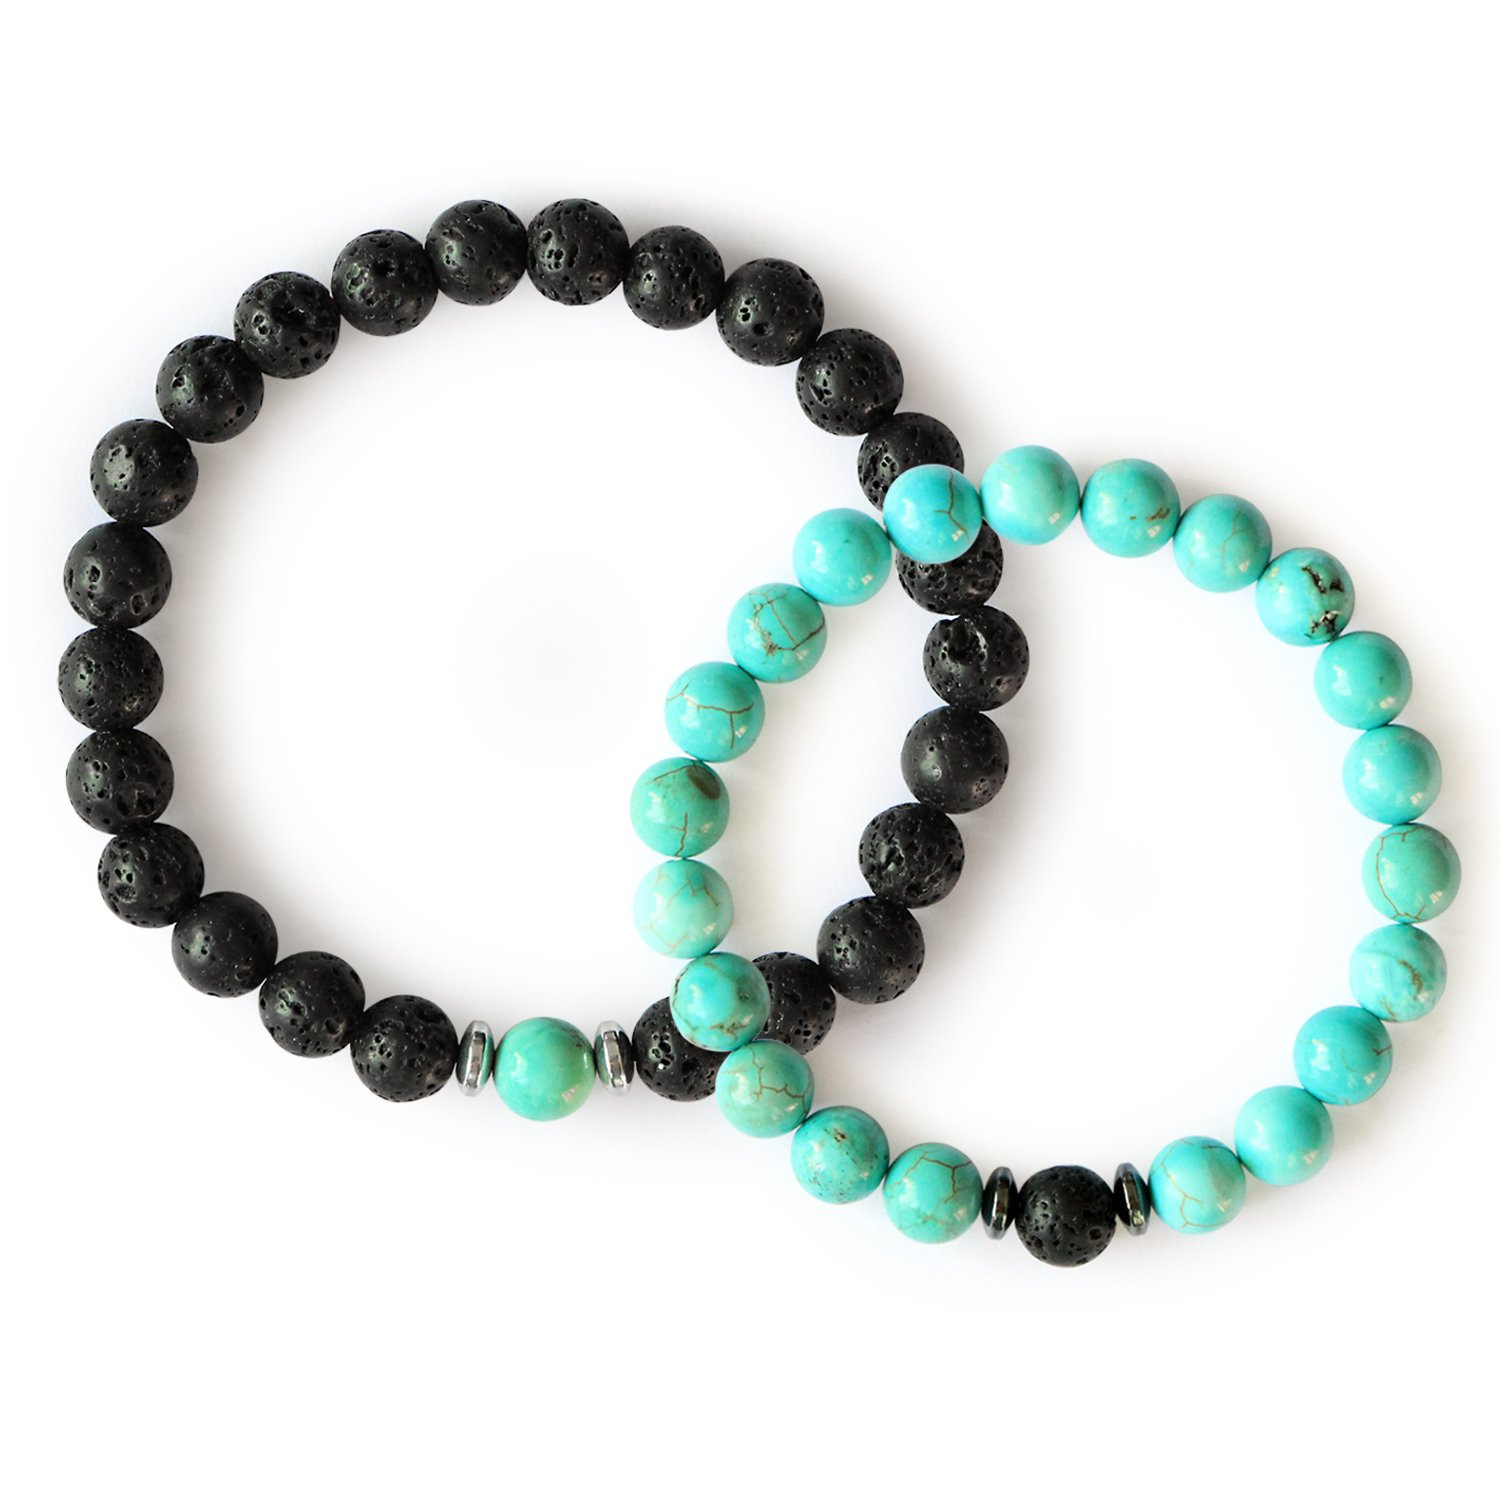 Me&Hz Couple Friendship Distant Bracelets Healing Black Onyx Turquoise Stretch Beaded Bracelets Lovers